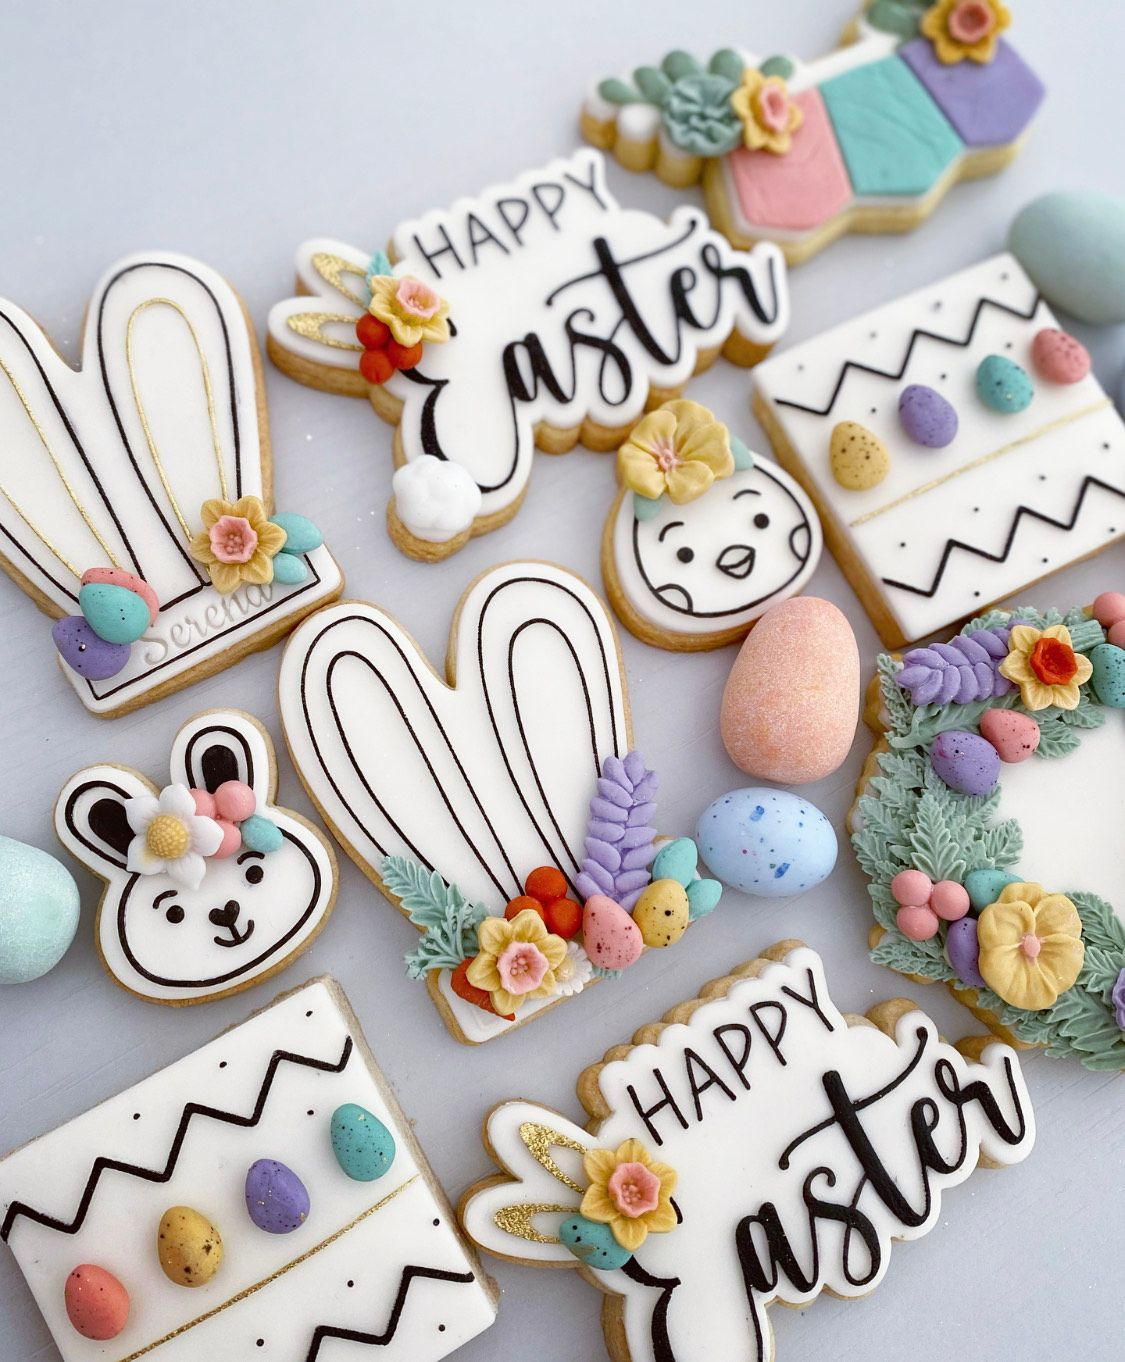 Happy Easter Style 4 with Ears and Tail Cookie Cutter and Embosser